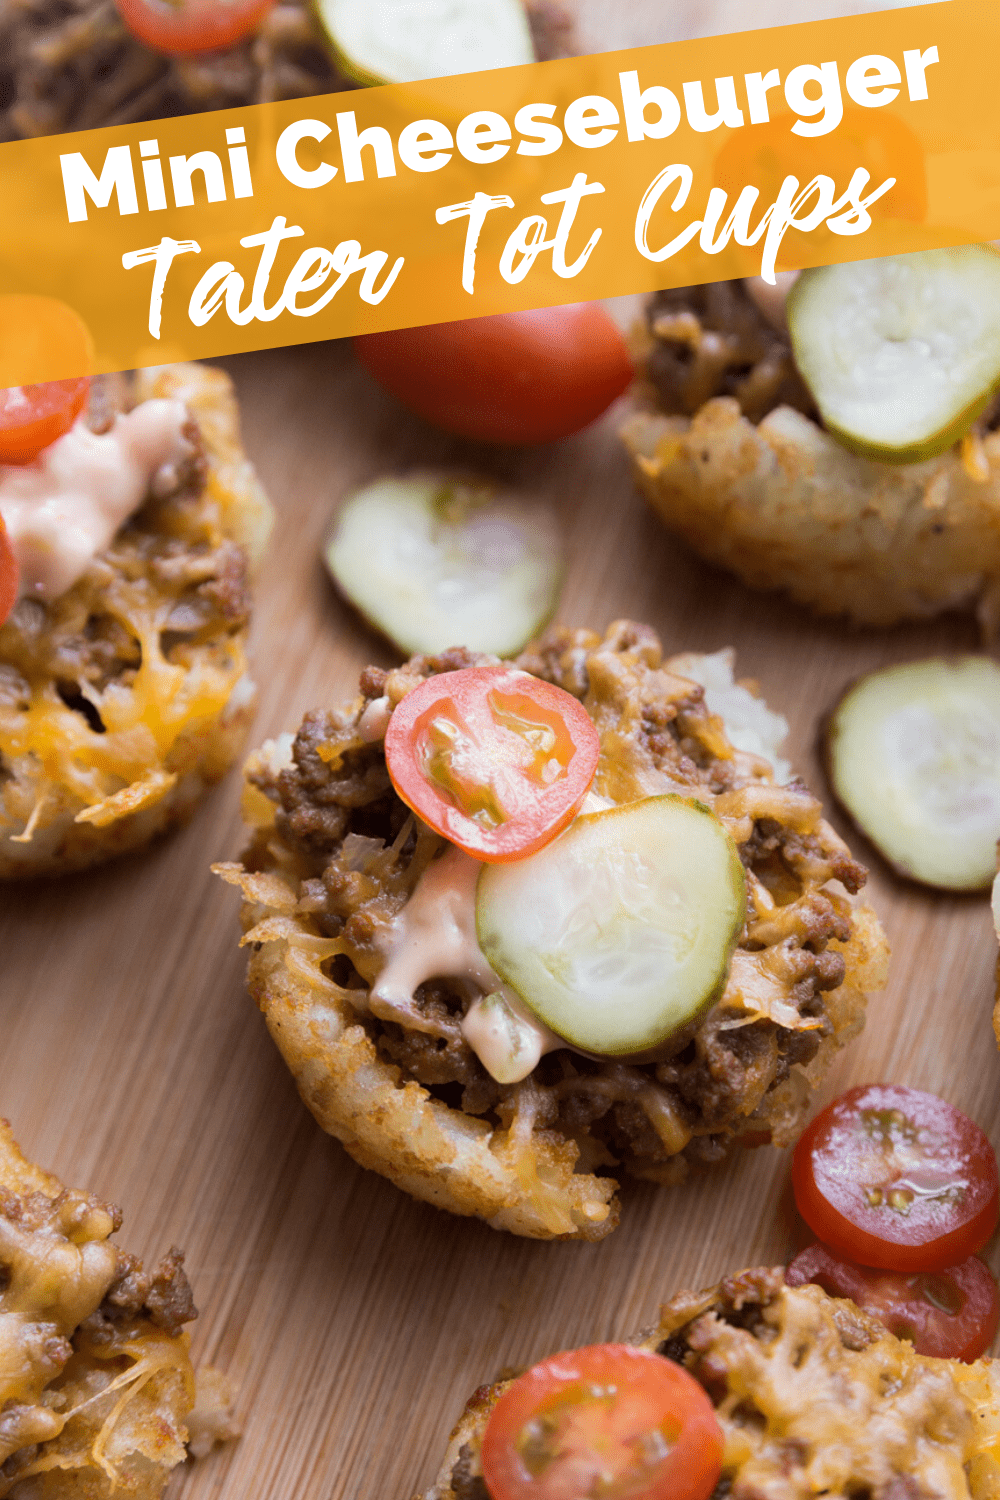 Mini Cheeseburger Tater Tot Cups recipe from Family Fresh Meals via @familyfresh